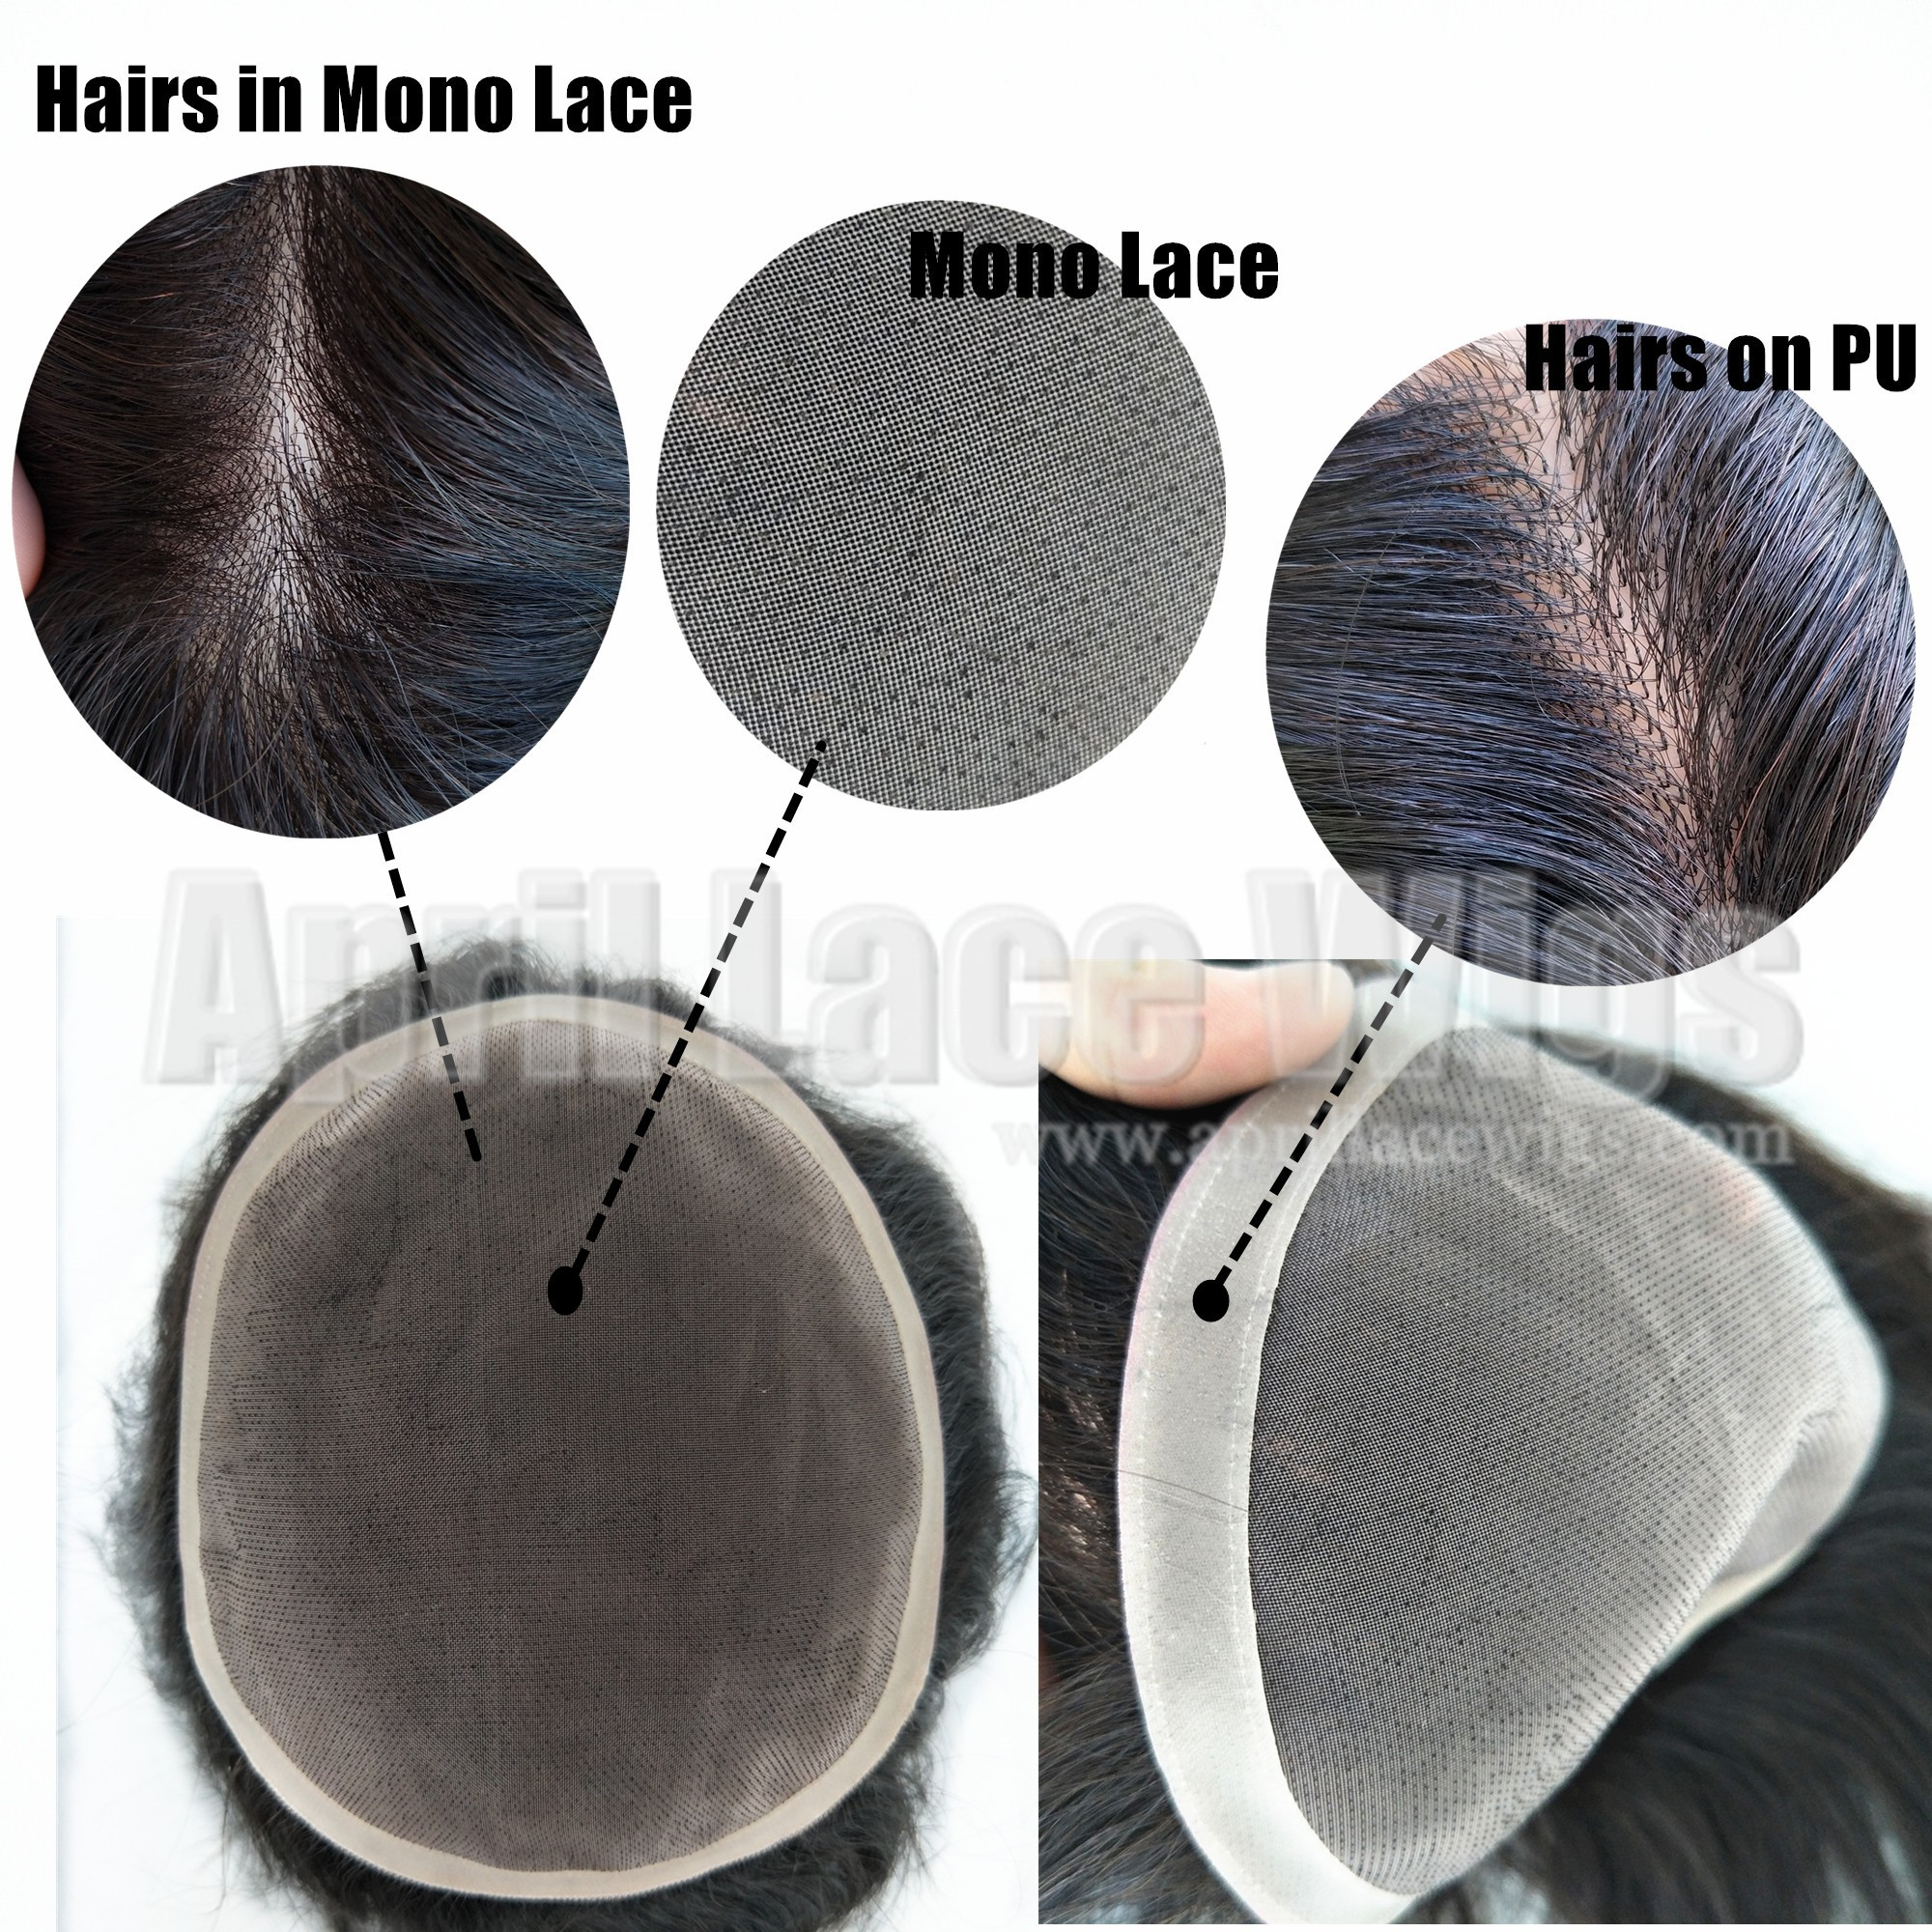 Mono lace and PU around hair topper